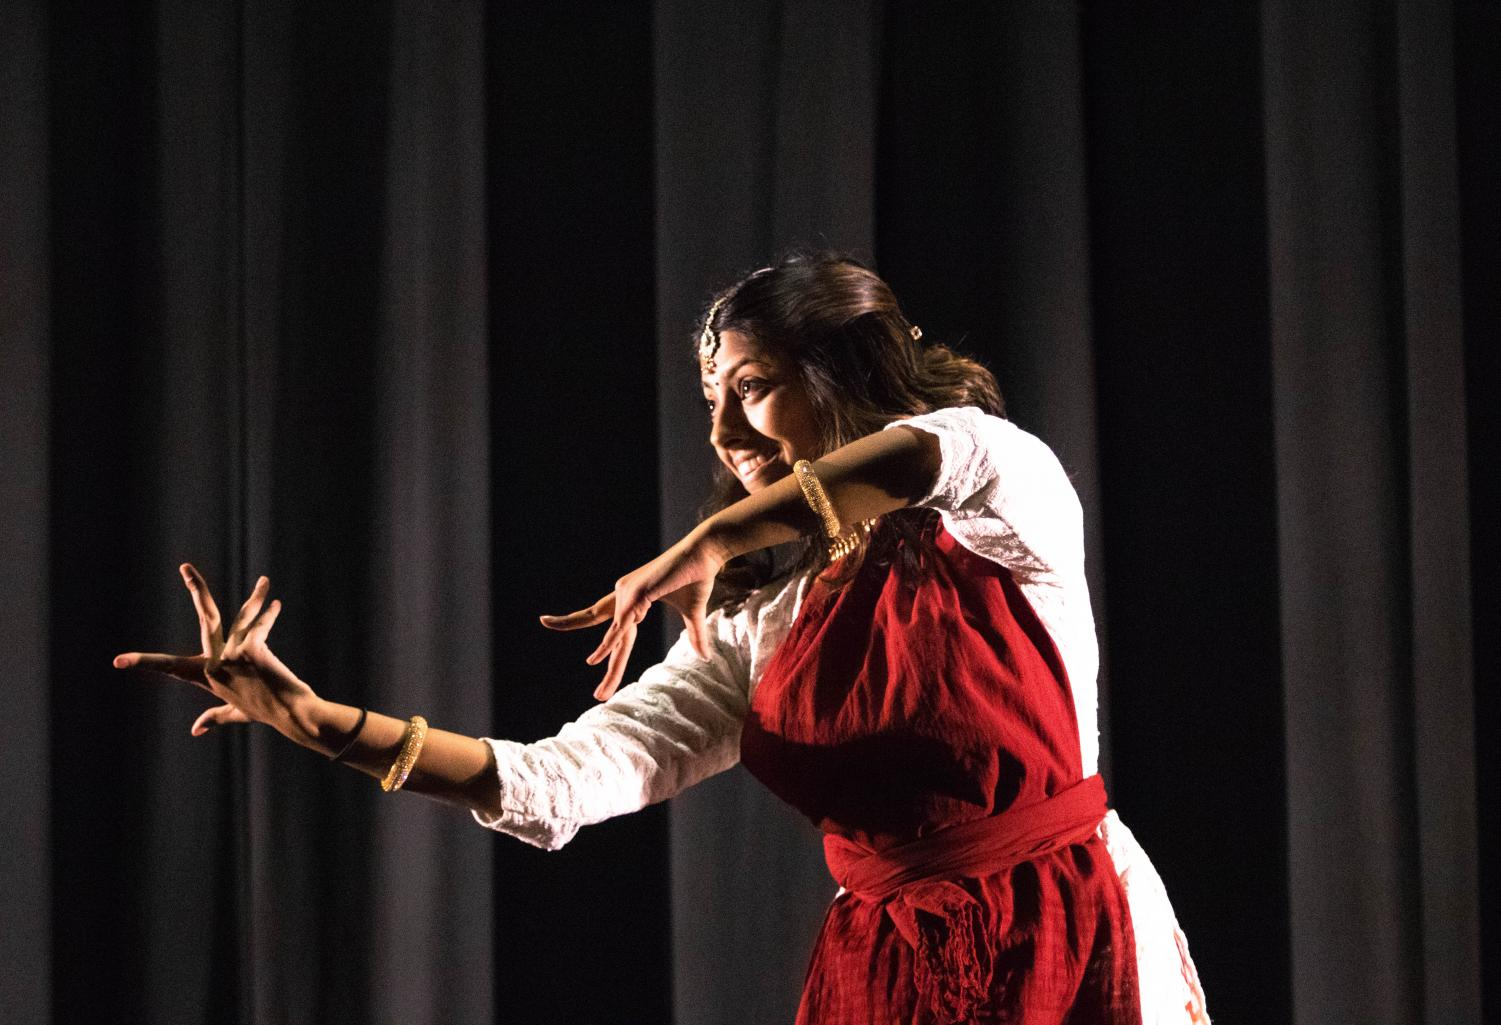 Ananya Rajesh ('20) performed Bharatanatyam, a classical type of dance originating from South India, as her talent.